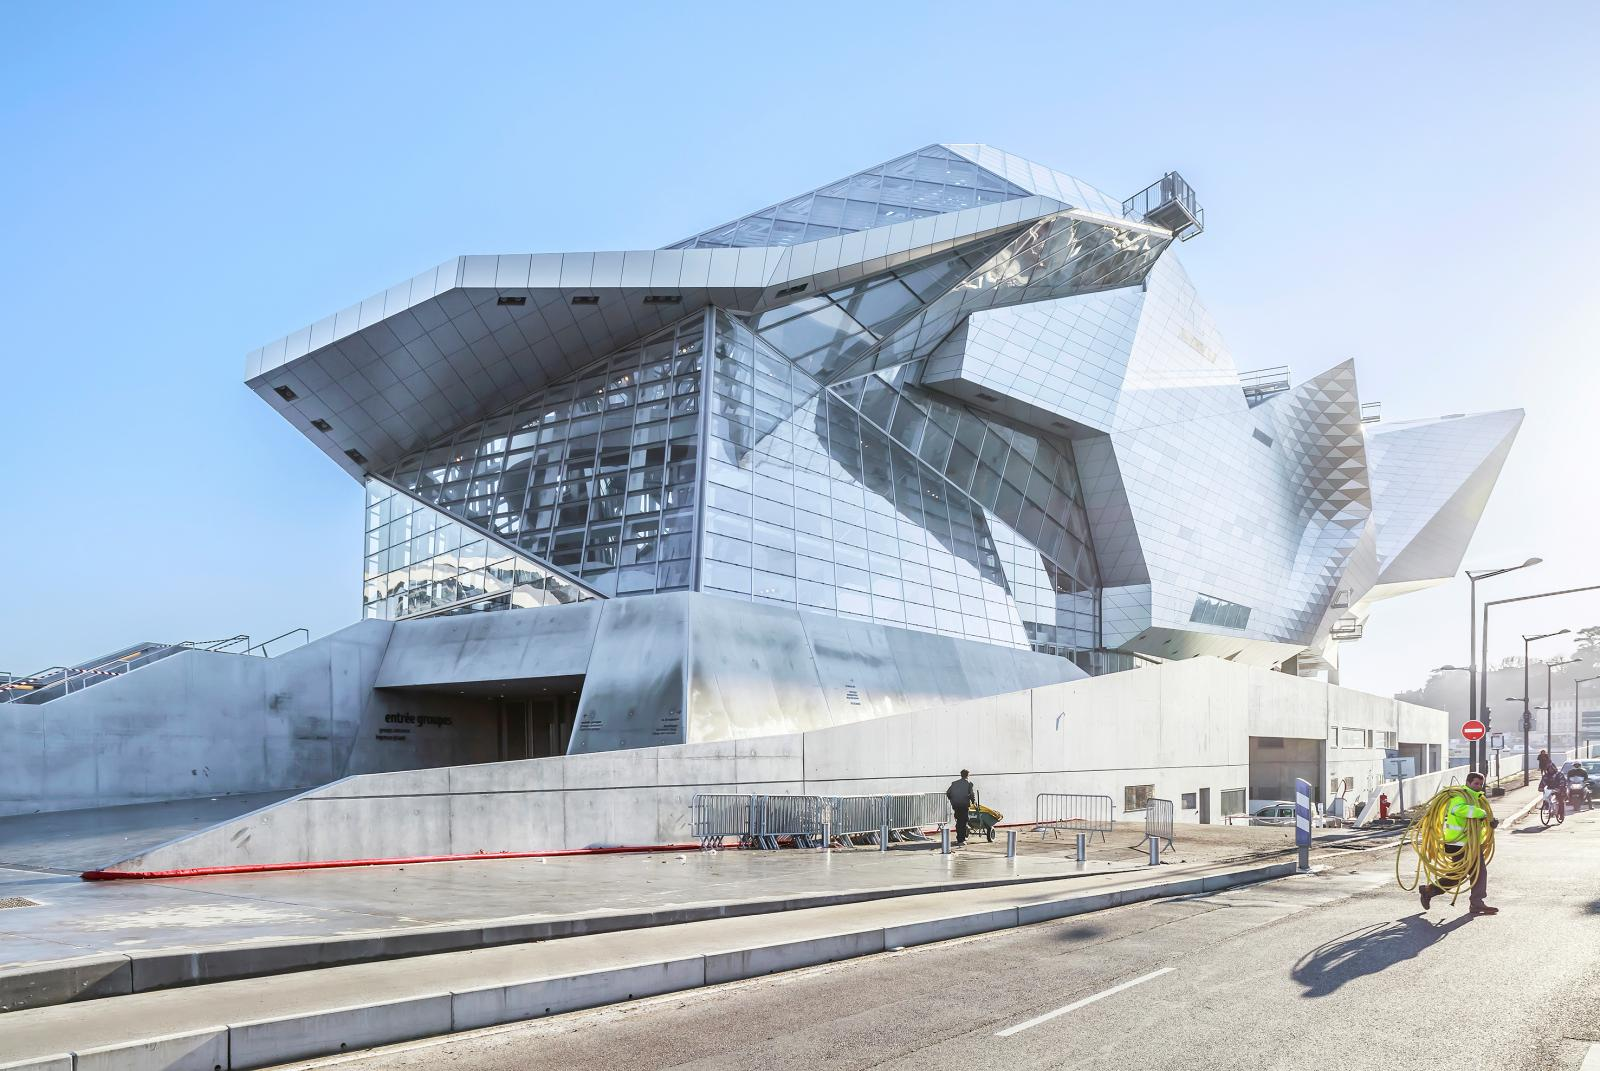 Musee des confluences in lyon france by coop himmelb l au 05 for Architecture lyon